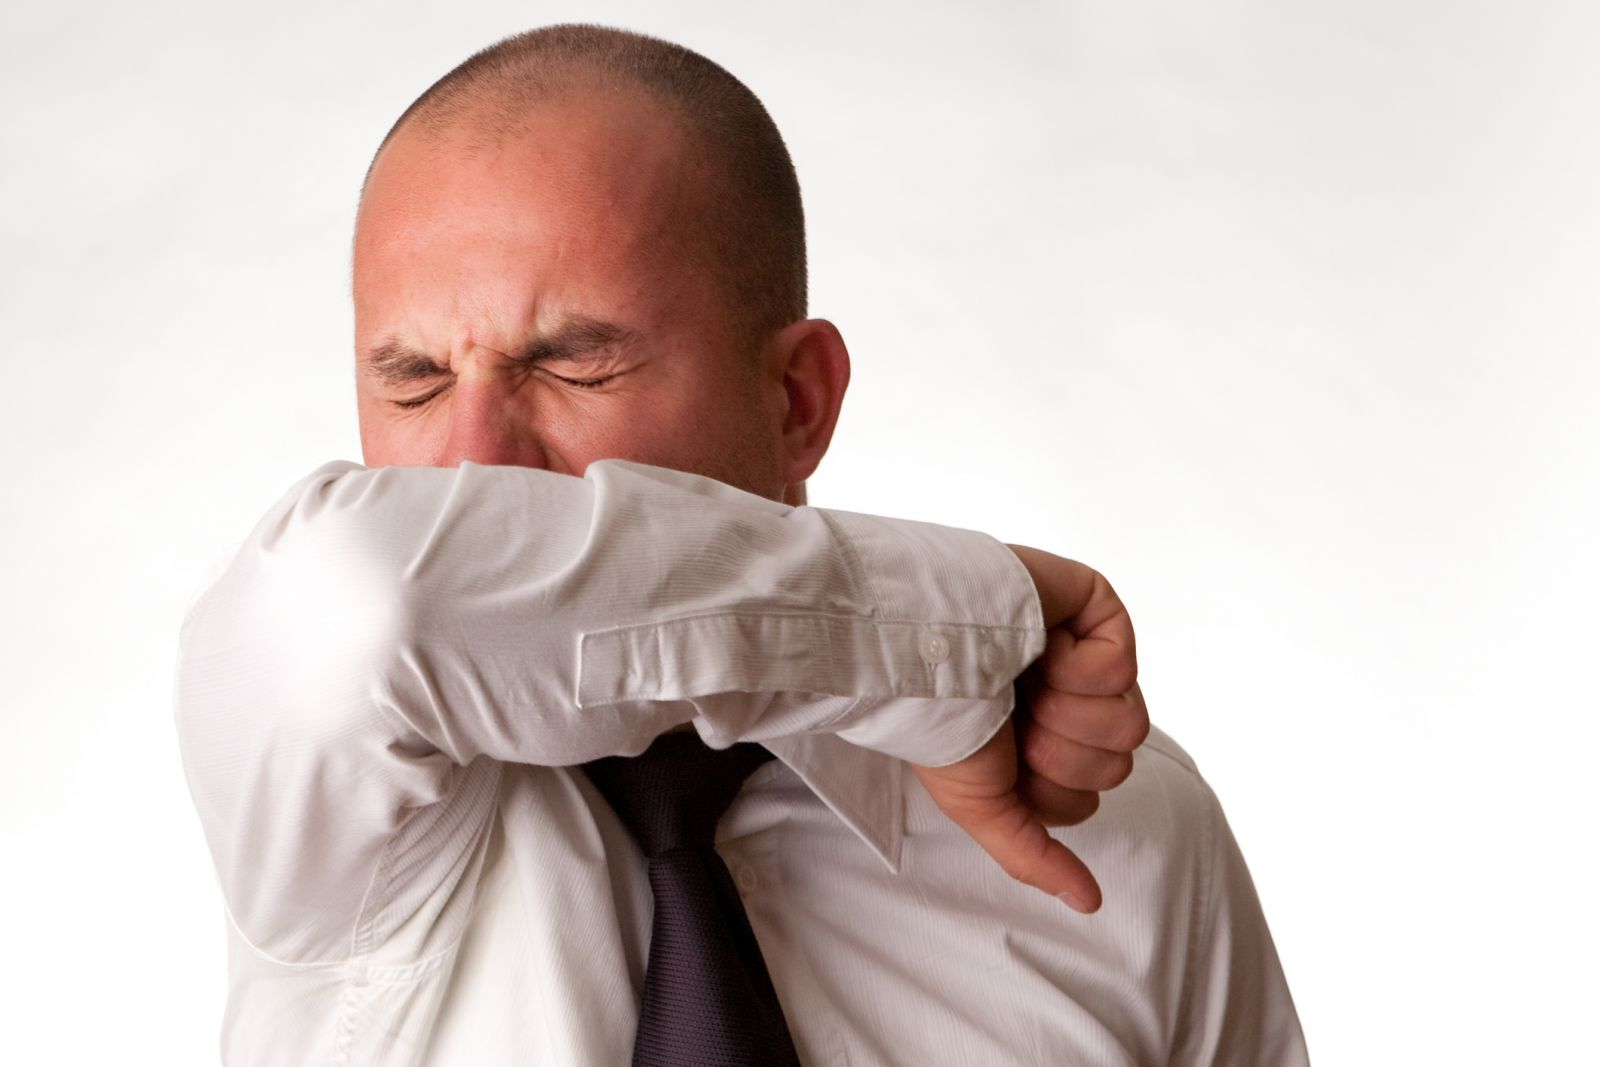 nagging cough, persistent cough